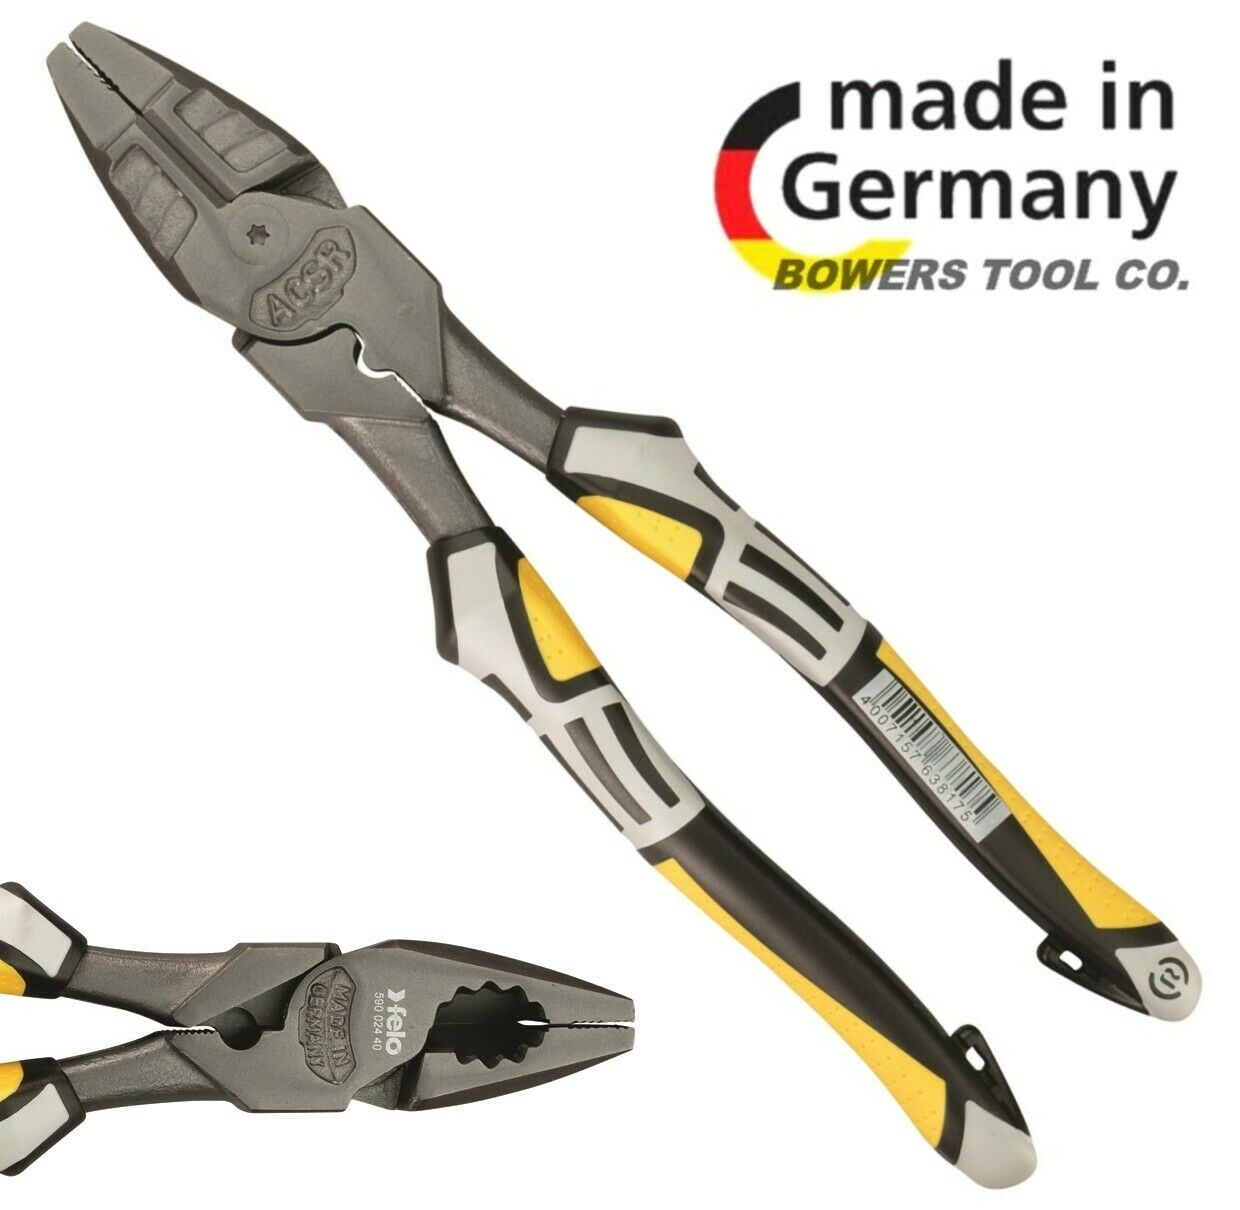 Felo 9  Lineman's Pliers w Fish Tape Cable Puller Crimper Comfort Grip & Tether